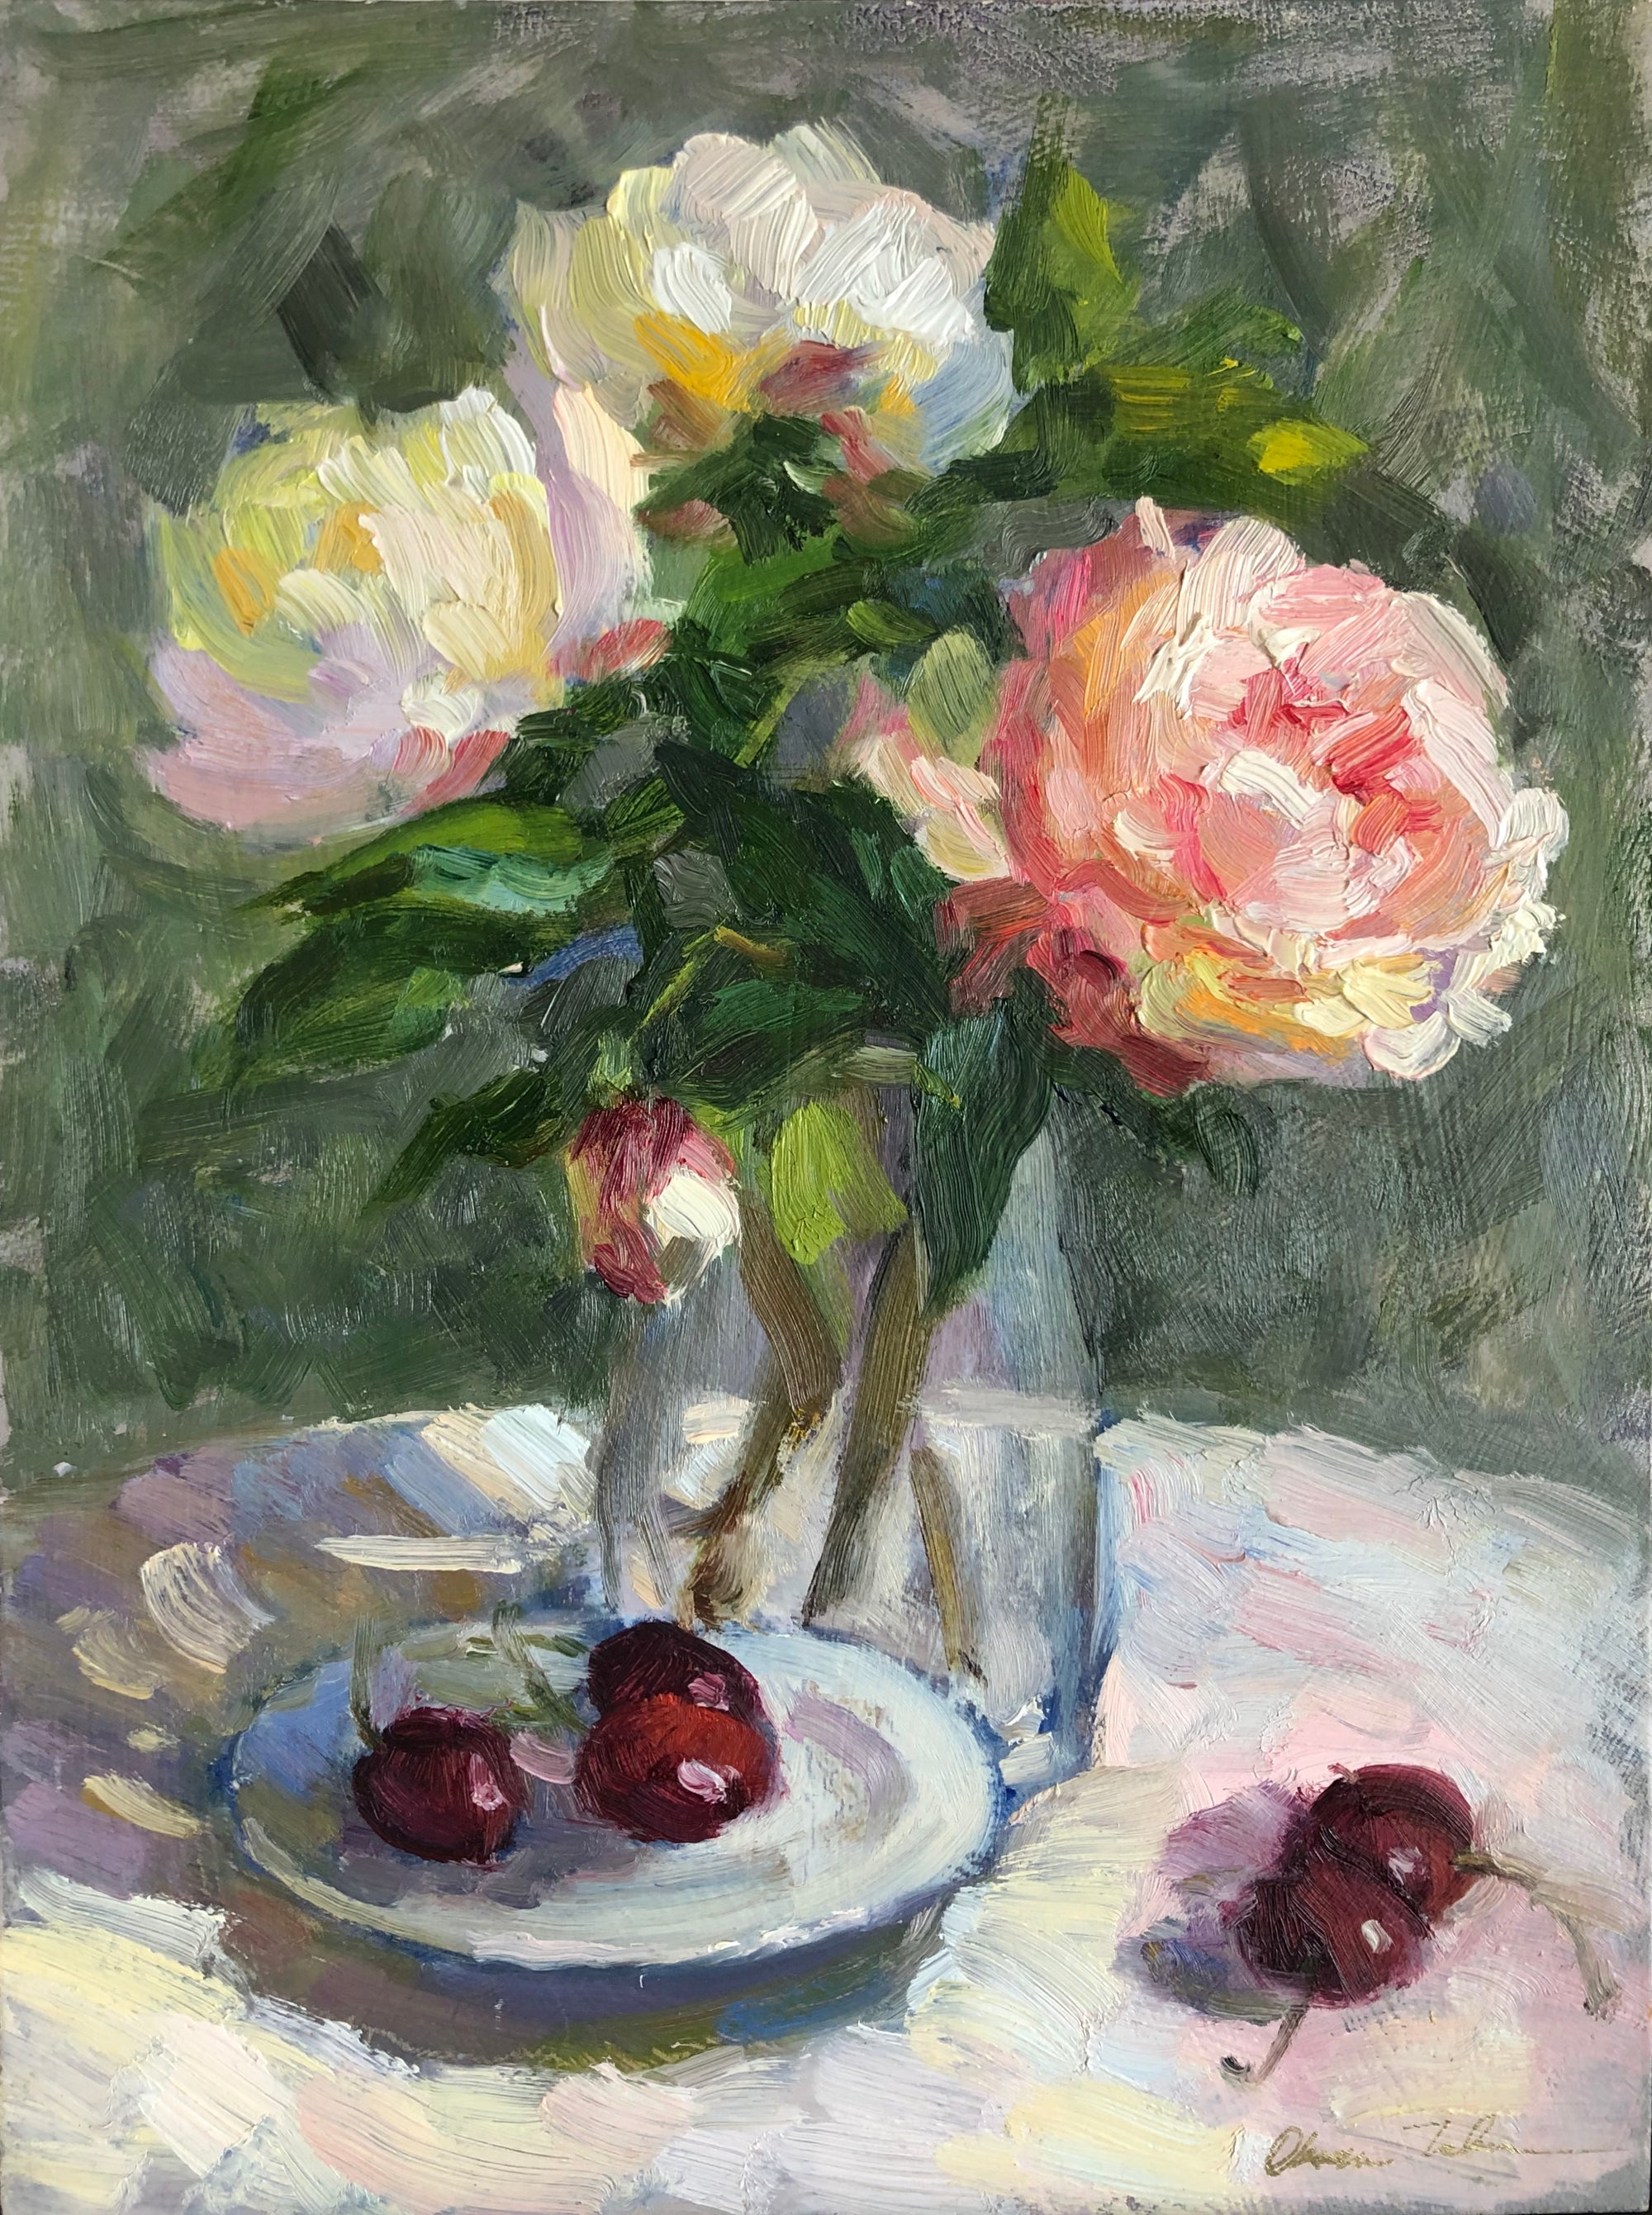 Still life painting of peonies and cherries